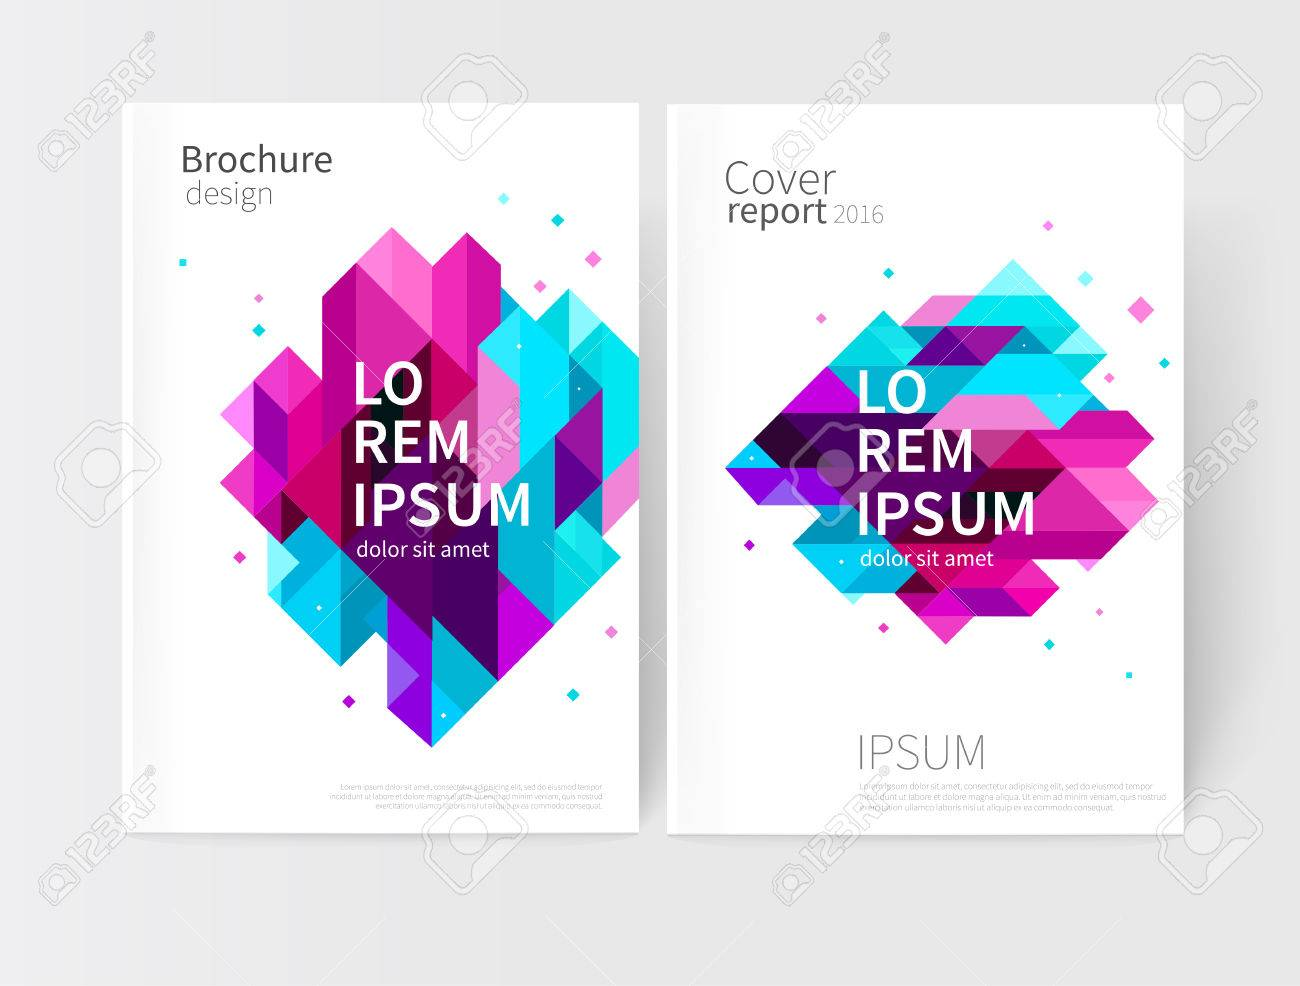 Brochure, leaflet, flyer, cover template. Abstract background blue, purple, violet & pink diagonal lines & triangles. stock-vector EPS 10 - 62836995